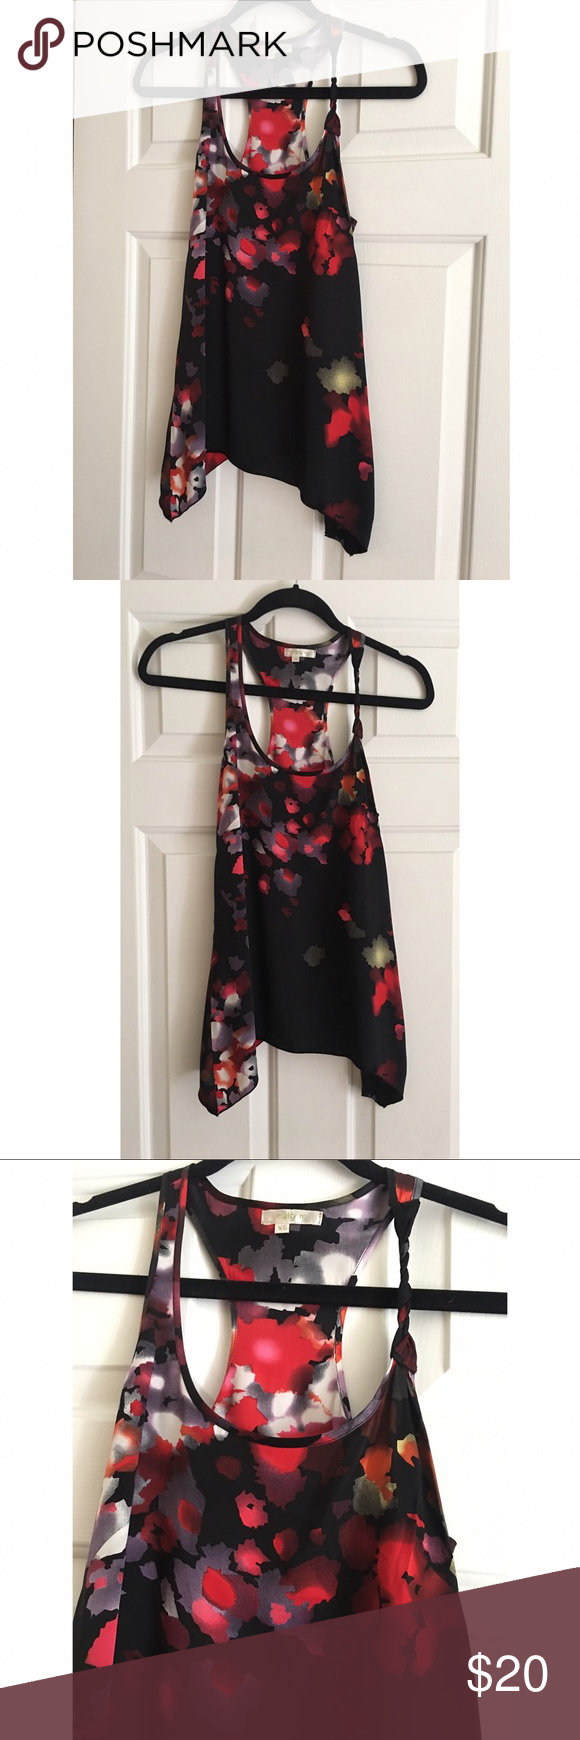 ⚫️ SALE ⚫️ Matty M Silk Sleeveless Blouse - XS Matty M Silk Sleeveless Blouse - Size XS. 100% Silk. Excellent condition. One shoulder strap is braided. Dry cleaned. No rips, tears, or stains. Matty M Tops Blouses